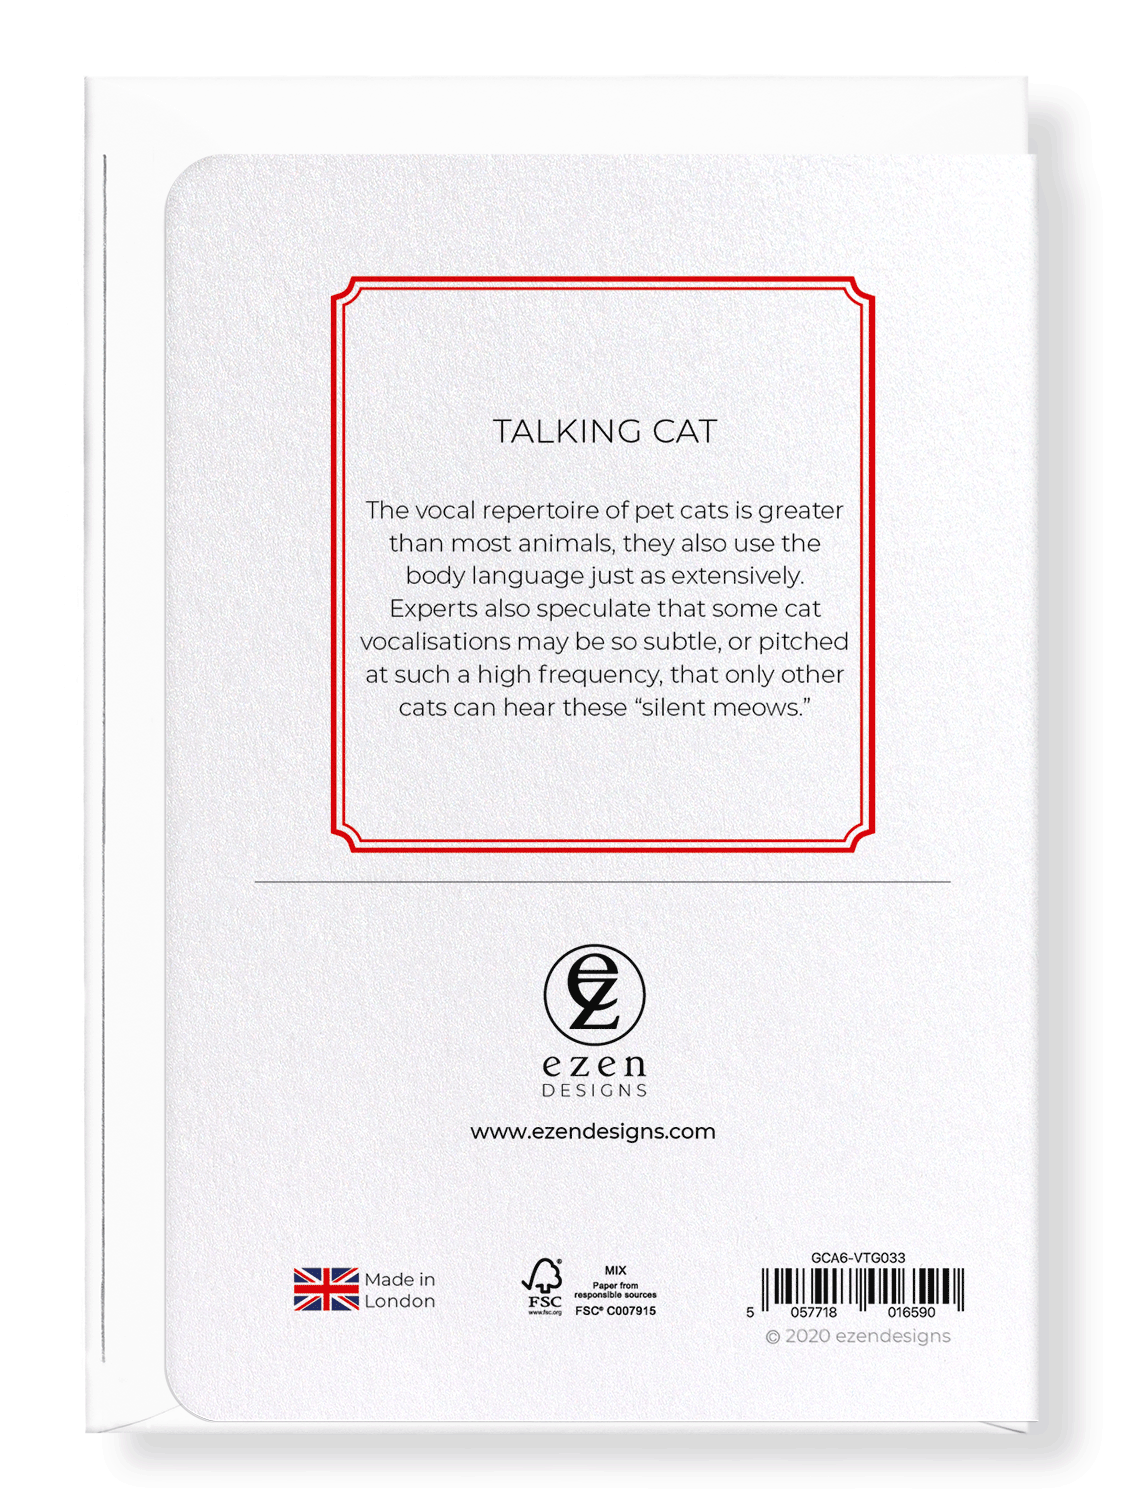 Ezen Designs - Talking cat - Greeting Card - Back